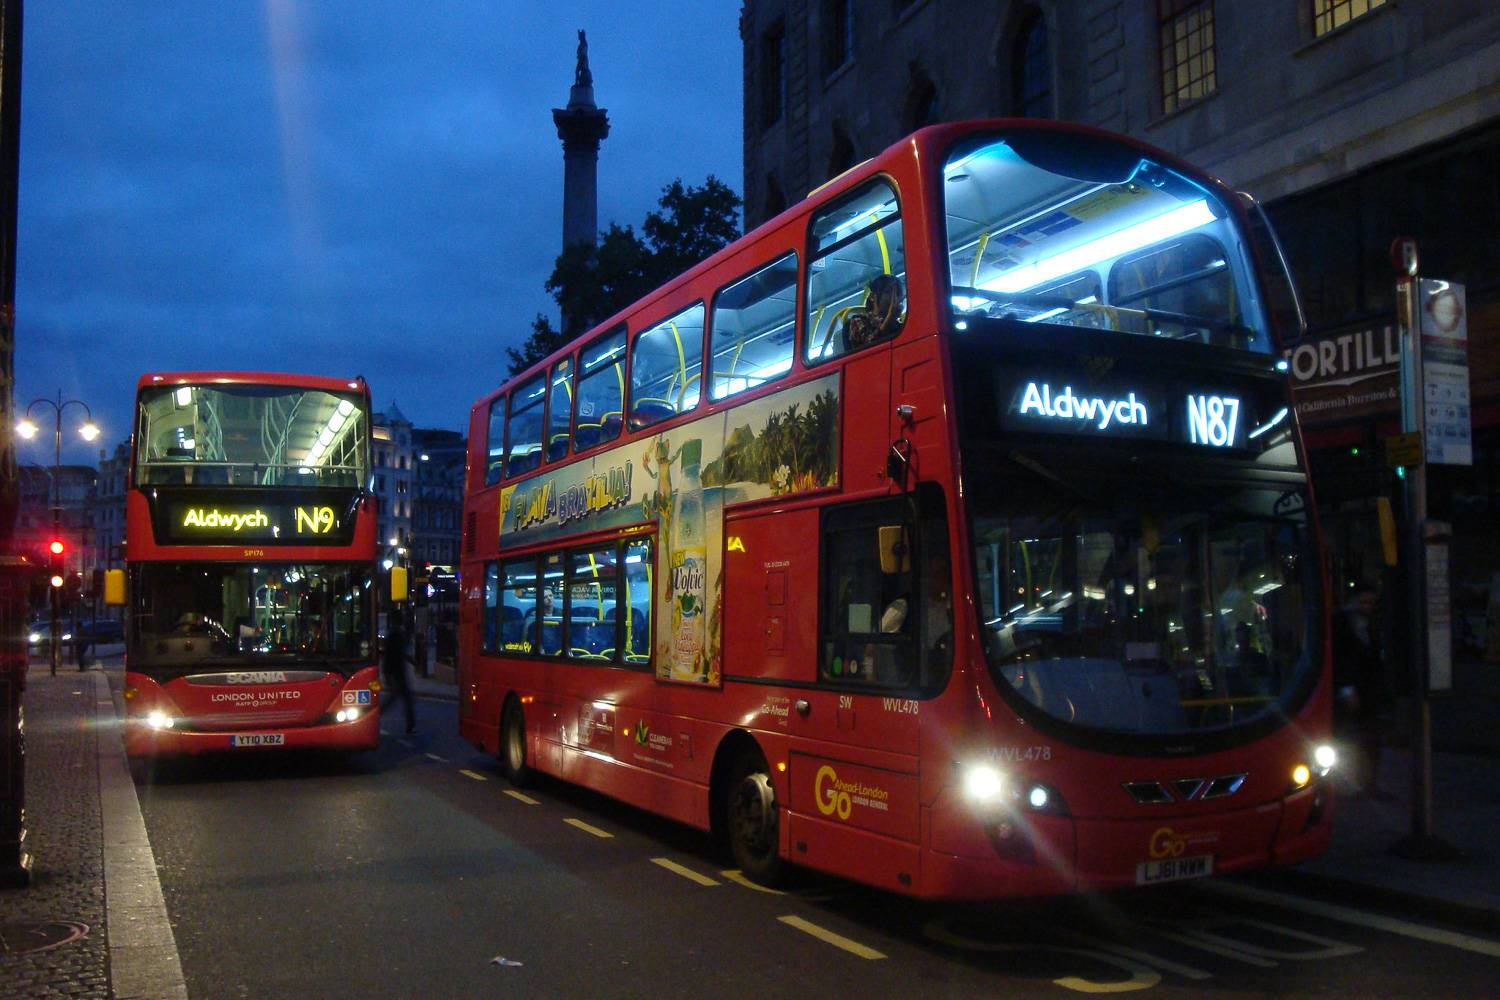 Image of two London double decker buses at night.